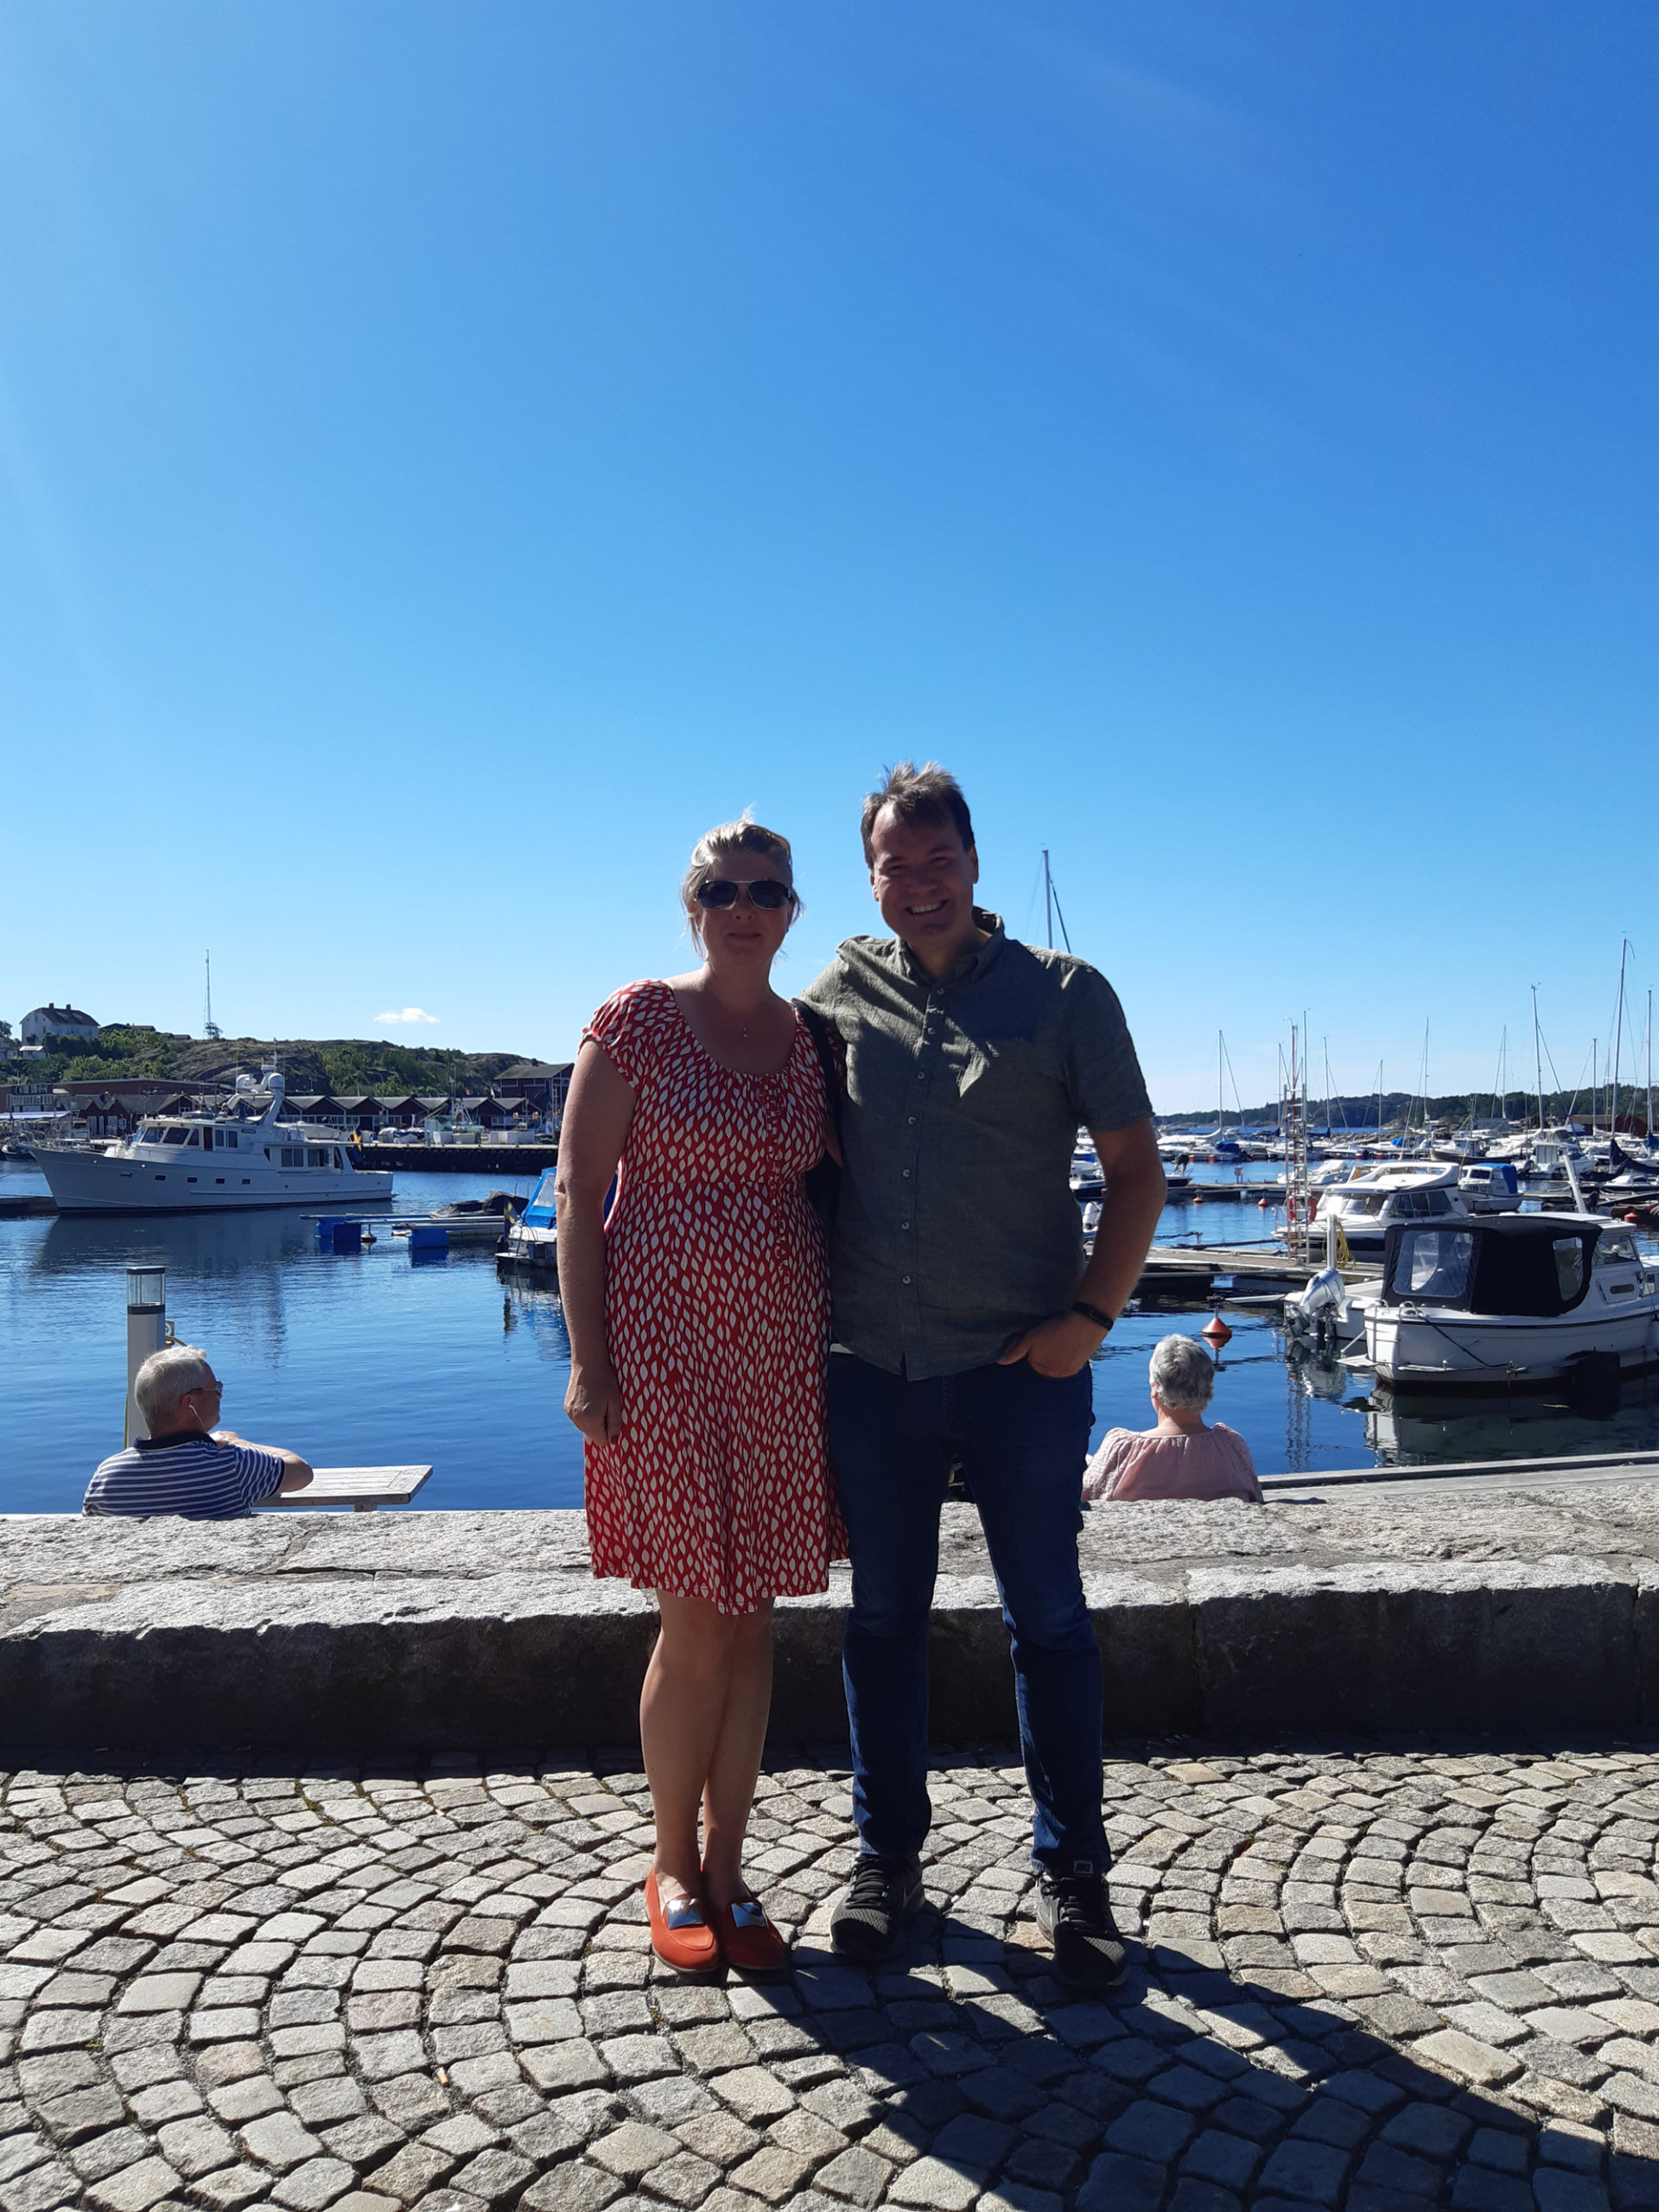 Me and the wife in Strömstad